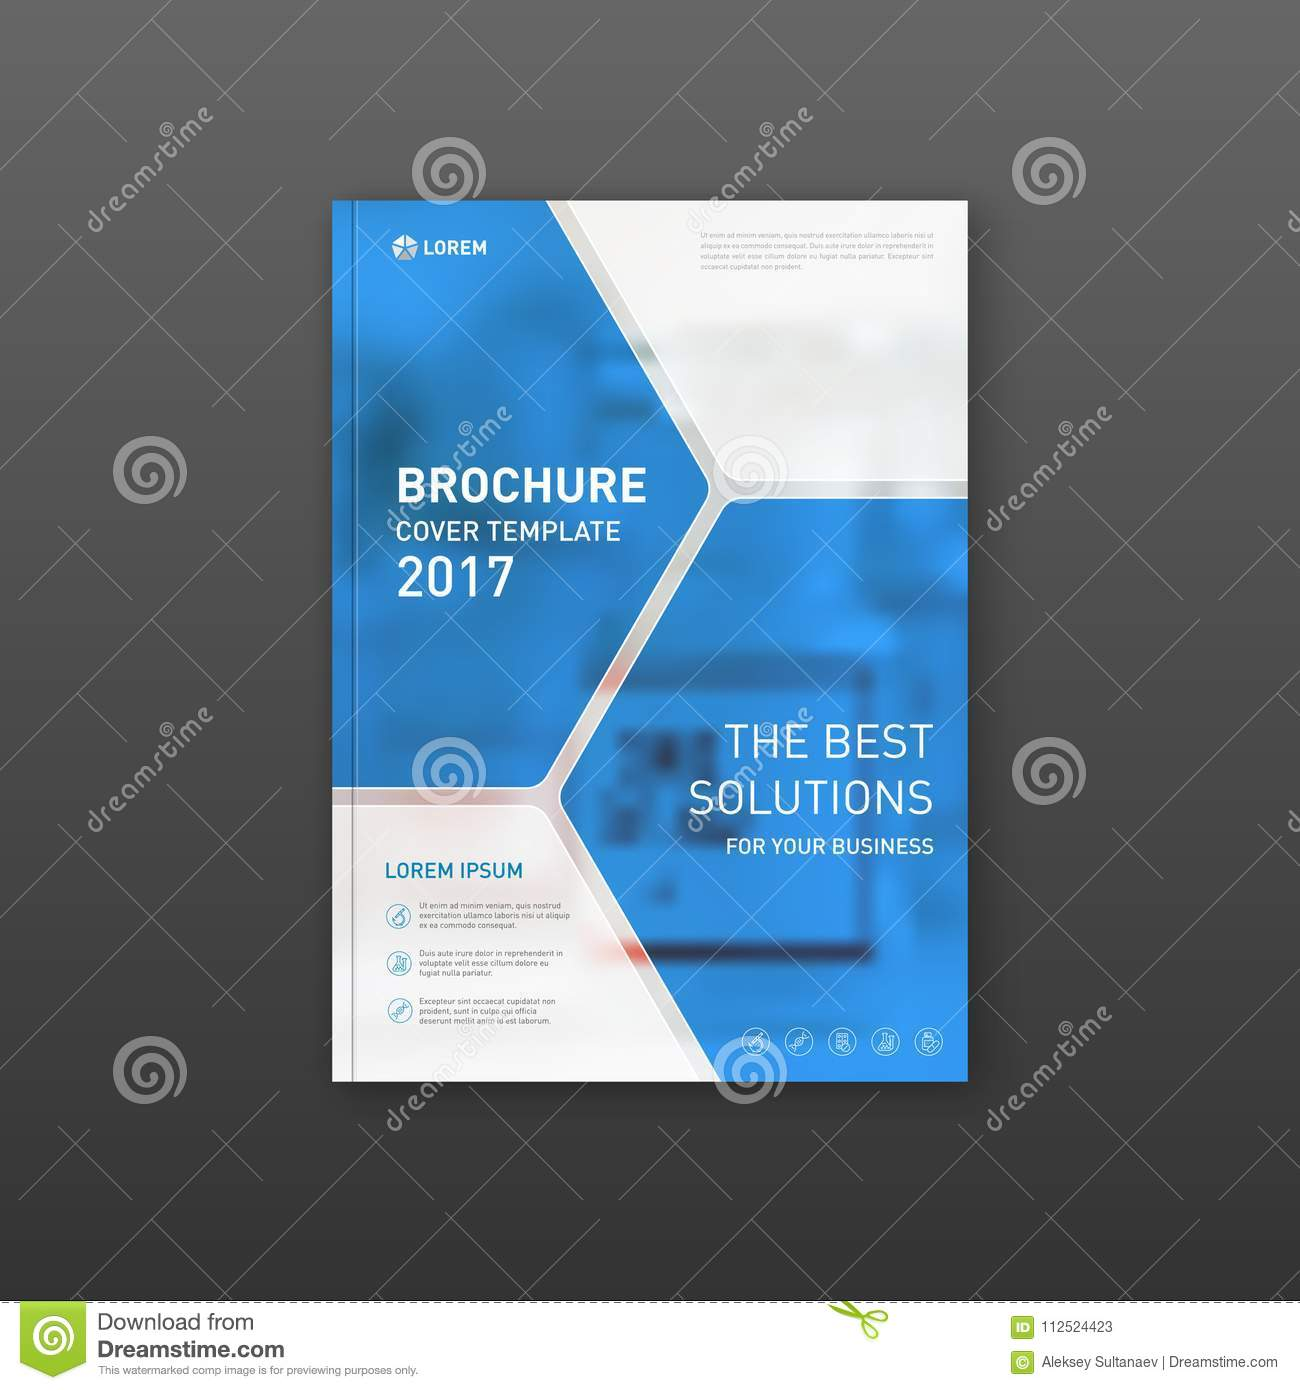 Medical Brochure Cover Template Flyer Design Layout Stock Vector Illustration Of Tablet Science 112524423